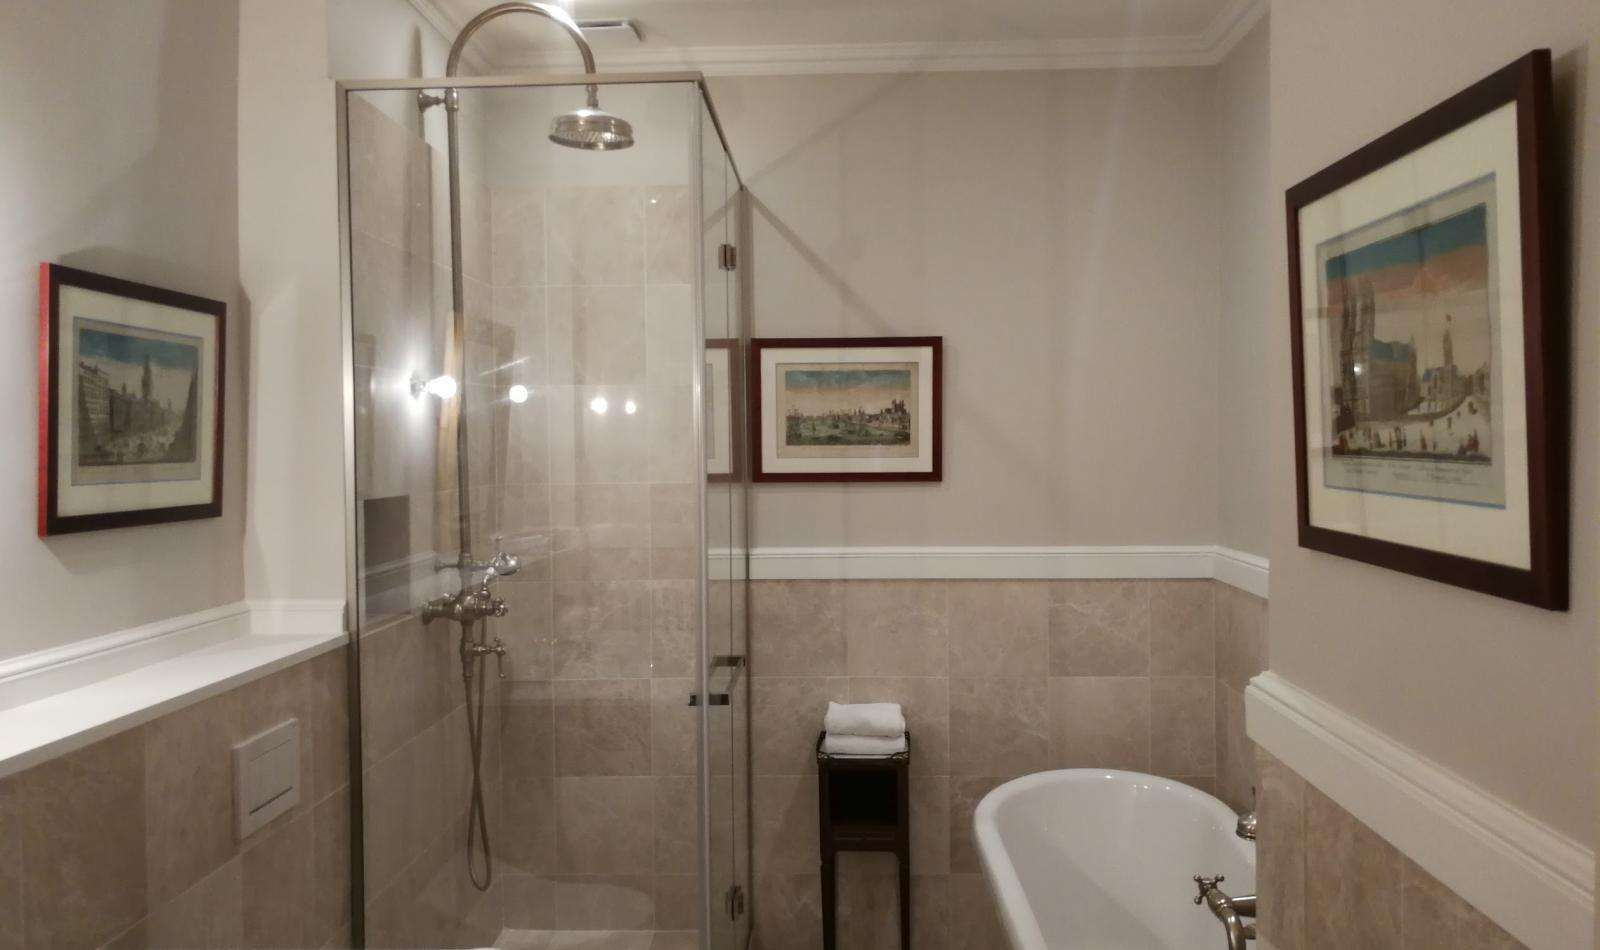 Salle De Bain Low Cost hôtel d'angleterre - photo gallery - in the heart of saint